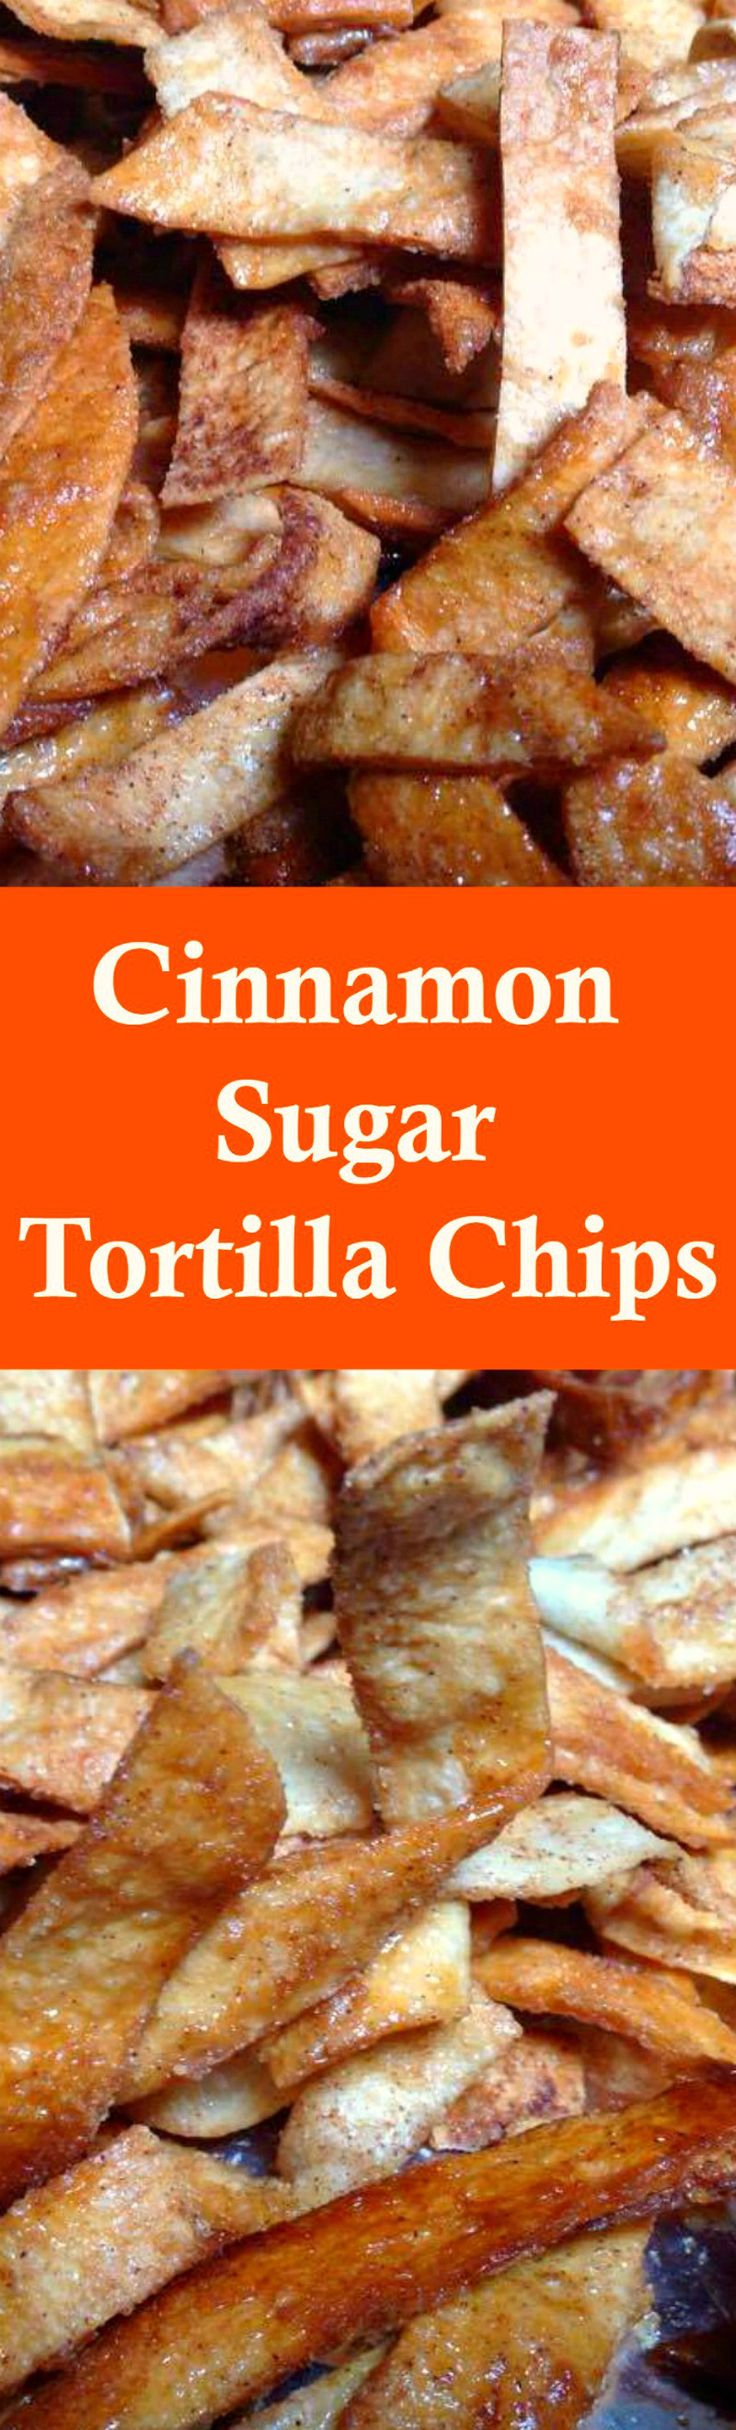 Cinnamon Sugar Tortilla Chips! These are a lovely sweet snack using very simple ingredients and incredibly easy to make. Perfect for parties and holidays.   Lovefoodies.com